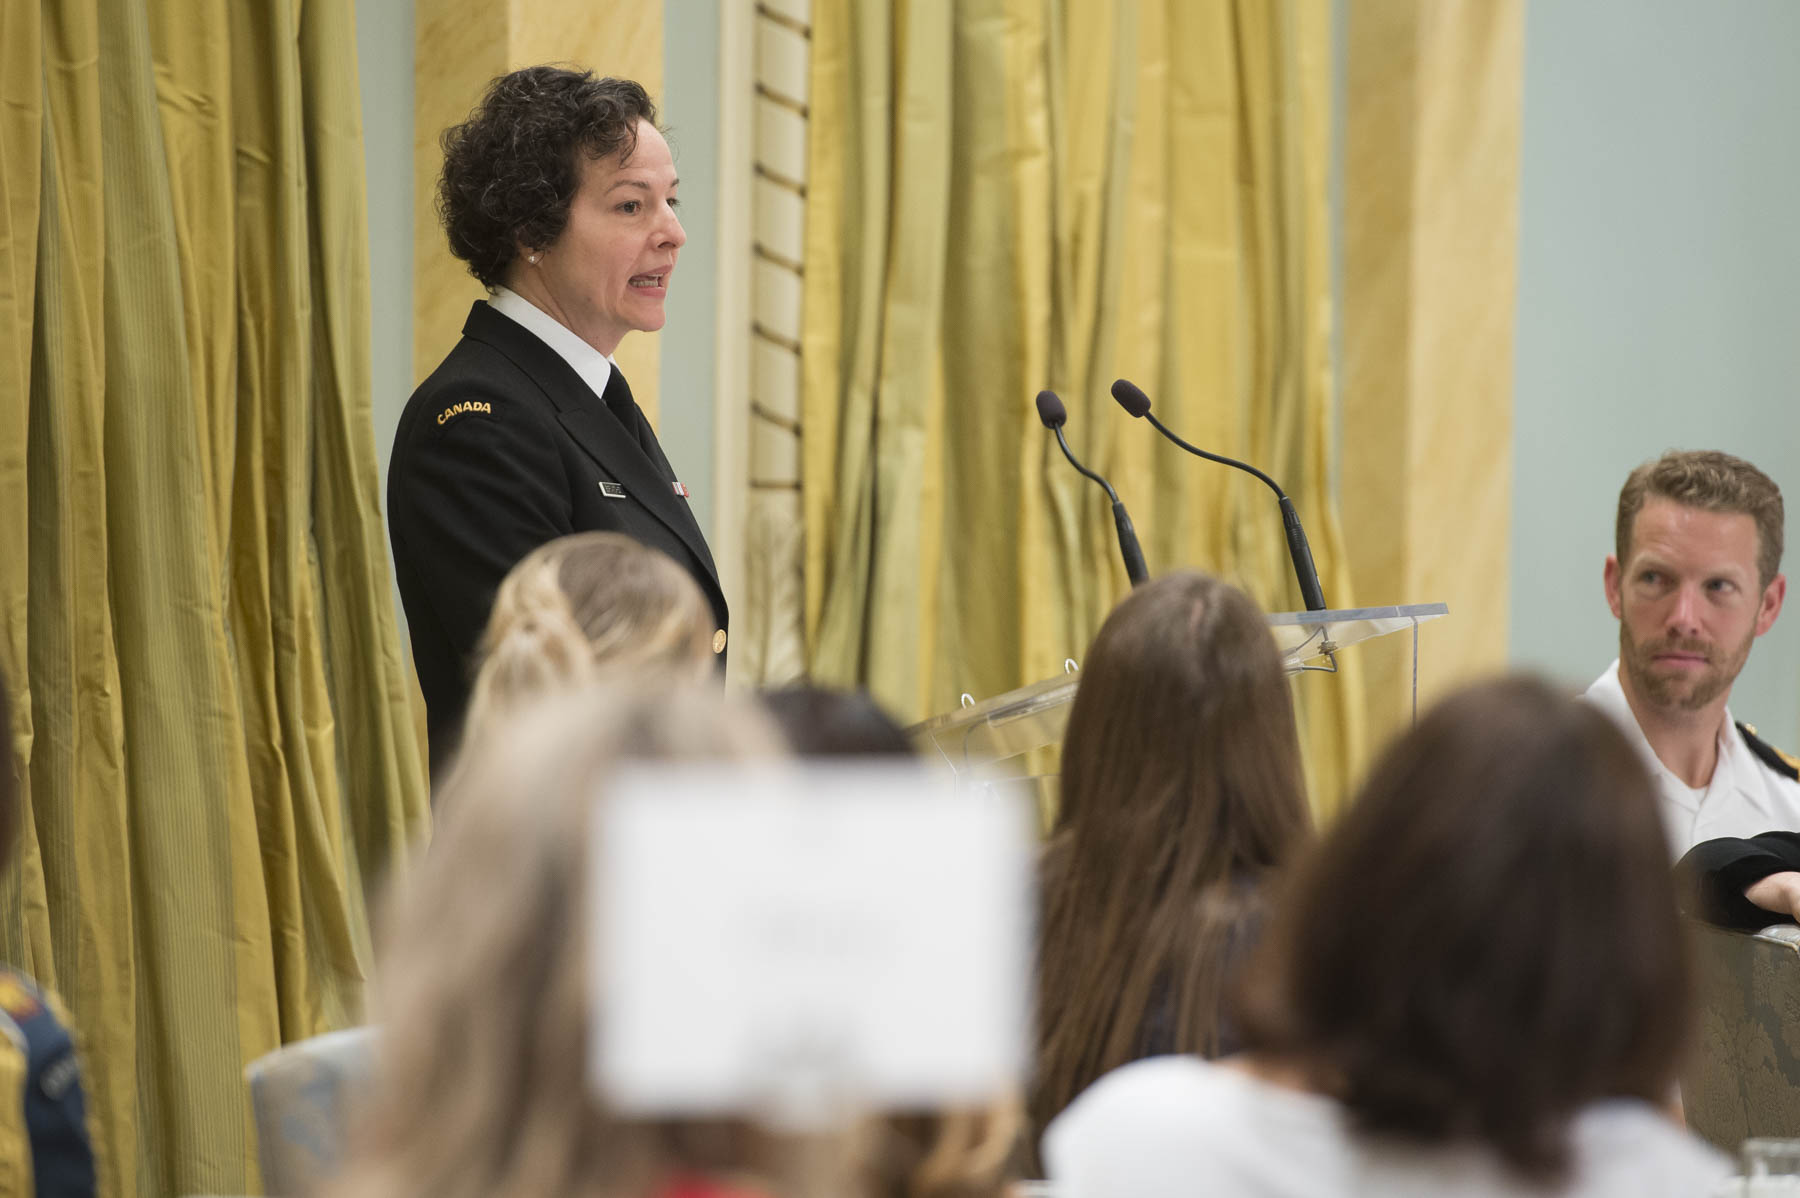 Commodore Geneviève Bernatchez, the first woman Judge Advocate General, discussed the mental health challenges and everyday stressors she faced while climbing the ranks in the legal system and working on sexual misconduct cases.